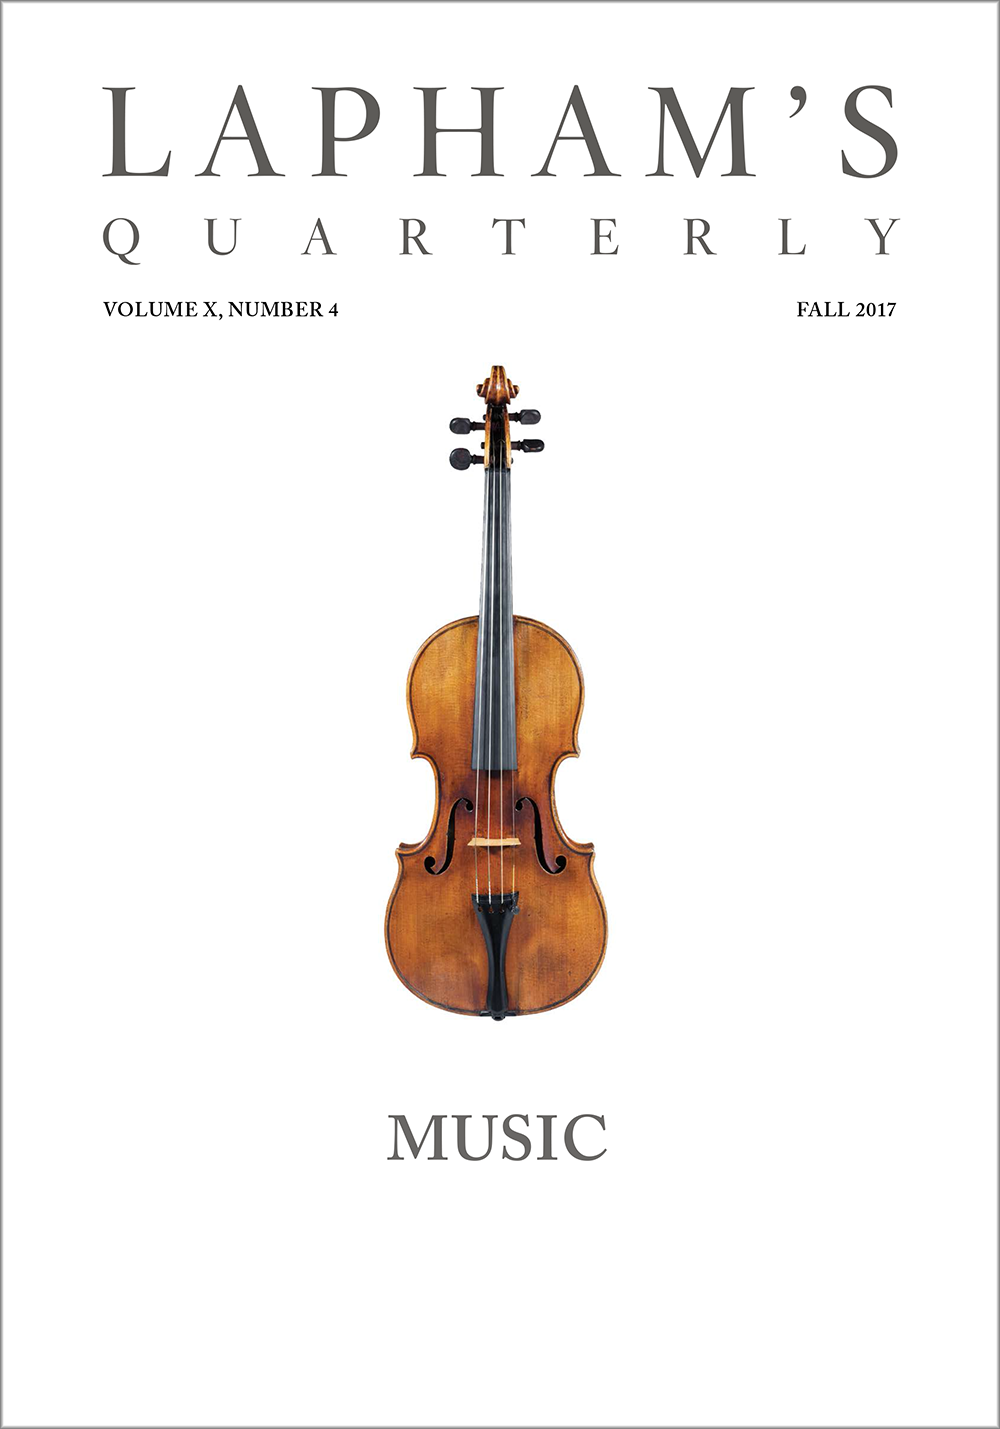 Music, the Fall 2017 issue of Lapham's Quarterly.